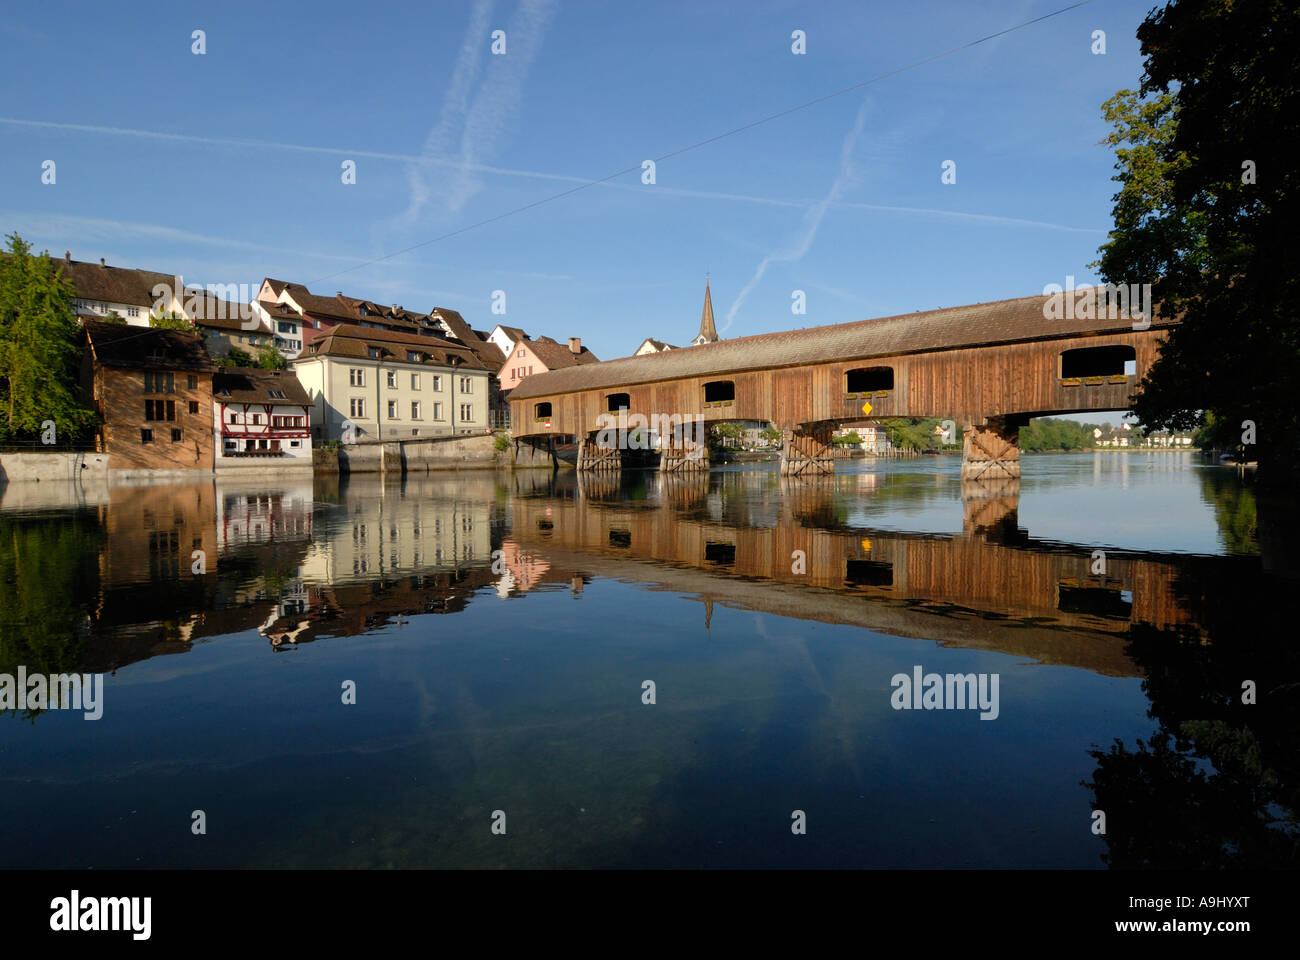 A historyc woodenbridge on the border from germany-switzerland - Baden Wuerttemberg, Germany, Europe. Stock Photo